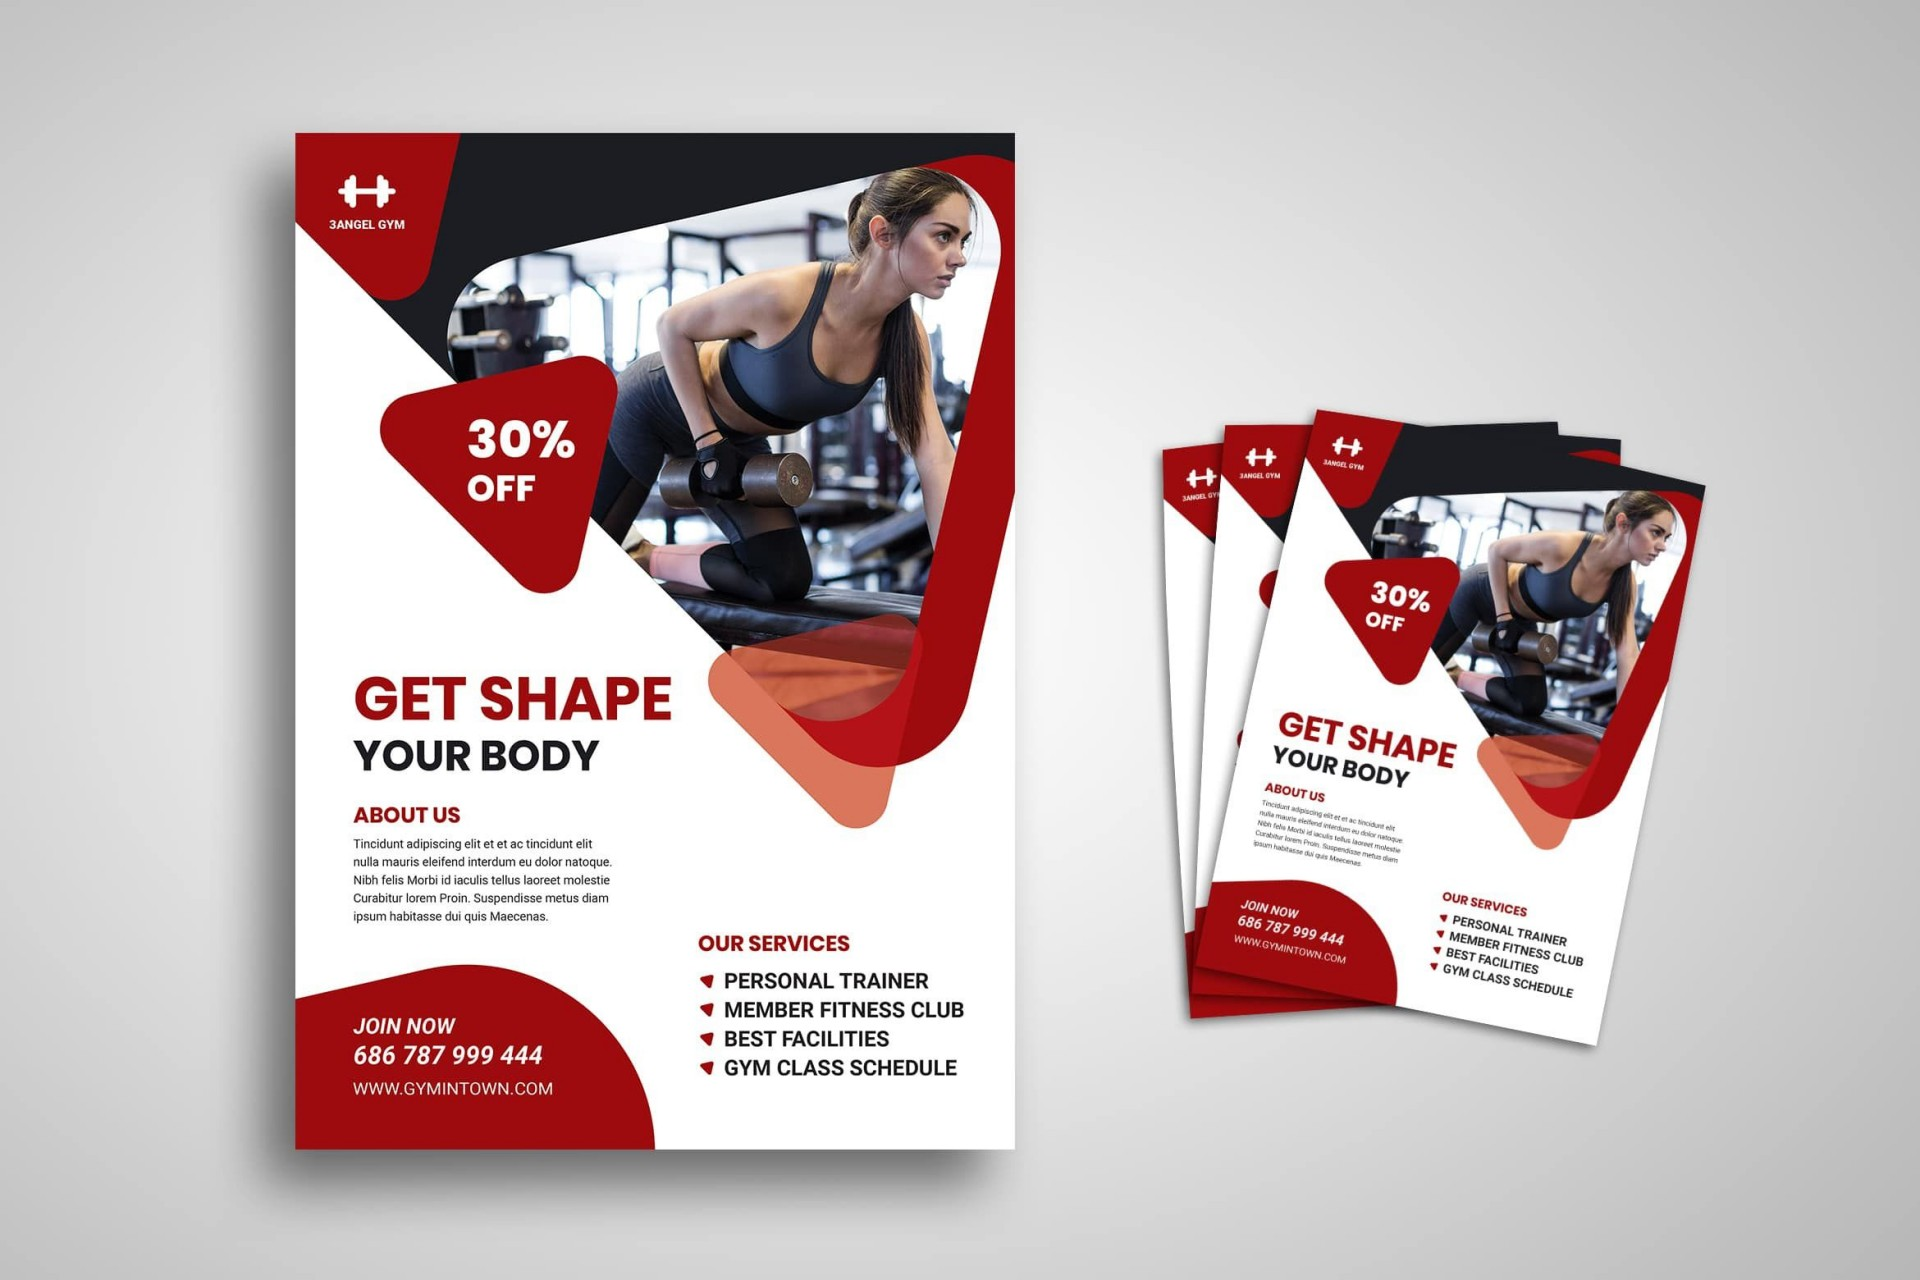 004 Frightening Personal Trainer Flyer Template High Def  Word Psd1920